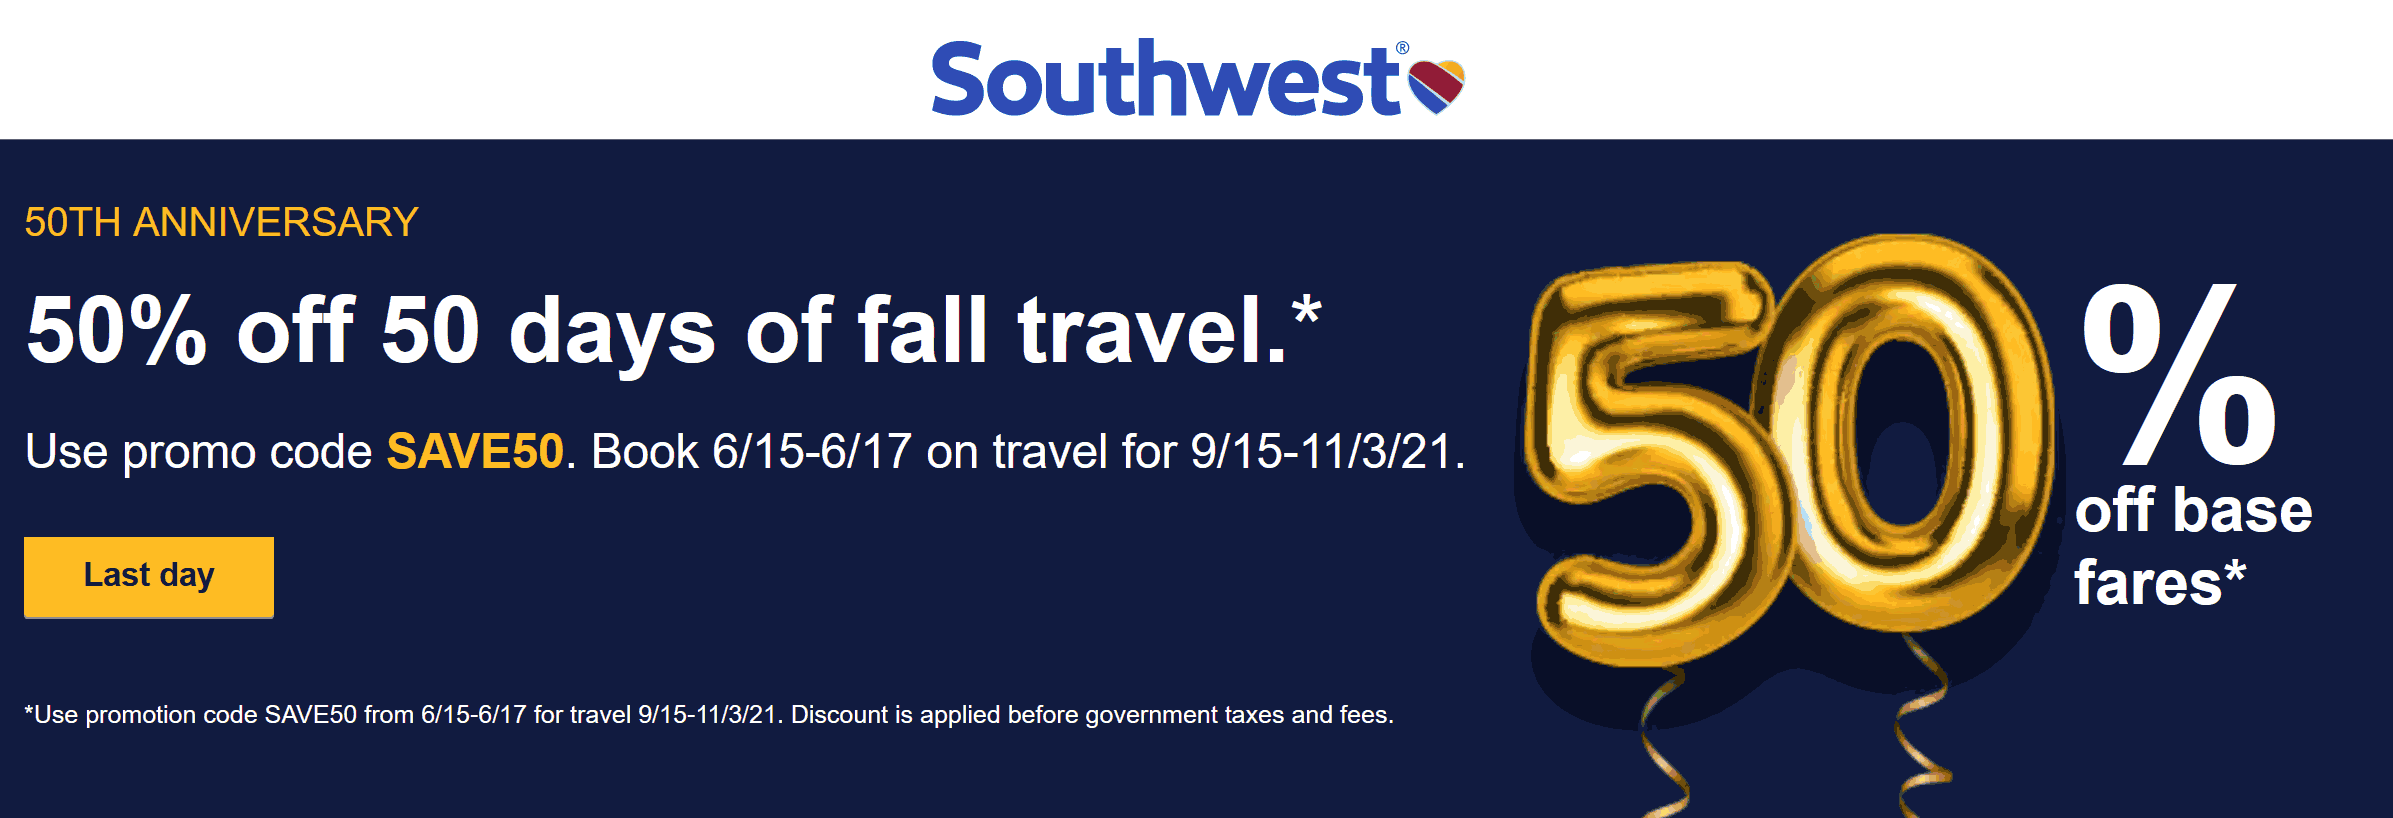 Southwest Airlines stores Coupon  50% off Fall airfare today at Southwest Airlines via promo code SAVE50 #southwestairlines